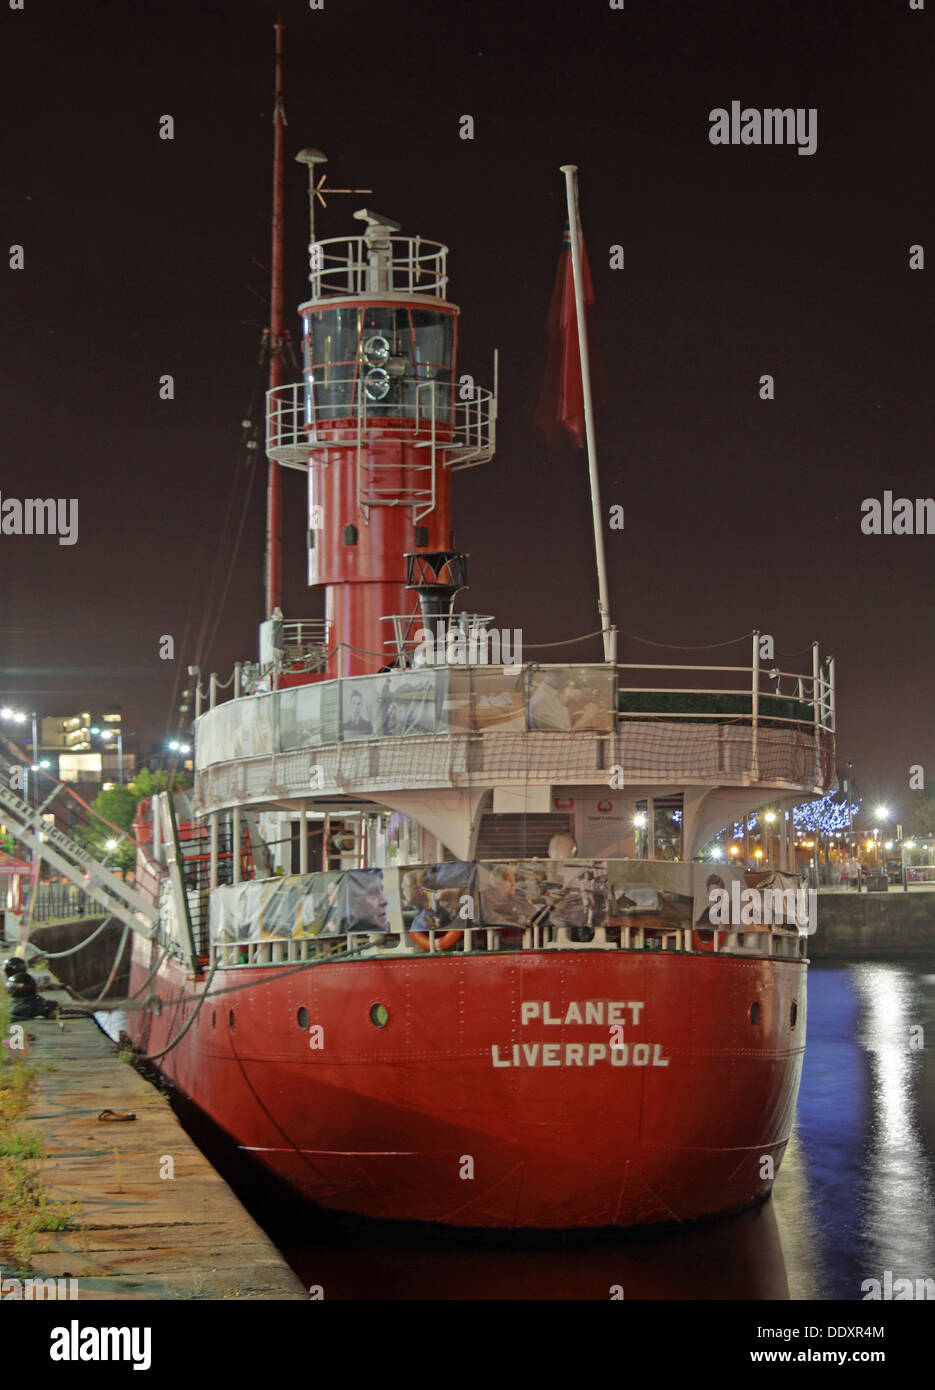 Vessel,boat,light,ship,English,channel,Museum,Merseyside,Lightship,marine,heritage,Canning,Dock,history,historic,Philip,&,Son,Dartmouth,Devon,England,MerseyPlanet,Light Vessel,Planet Liverpool,English Channel,Red Ship,Red Boat,Red Lightship,Canning Dock,Mersey Docks,Harbour Board,GoTonySmith,@HotpixUK,docks,and,Harbour,board,Trinity,House,London,Cammell Laird,Wet,Basin,Birkenhead,BAR,VARNE,Lightvessel,Preservation,Society,MLPS,Cross,Quay,boat,boats,Buy Pictures of,Buy Images Of,Images of,Stock Images,Mersey Docks and Harbour Board,Trinity House,Wet Basin,Mersey Lightvessel Preservation Society,Cross Quay